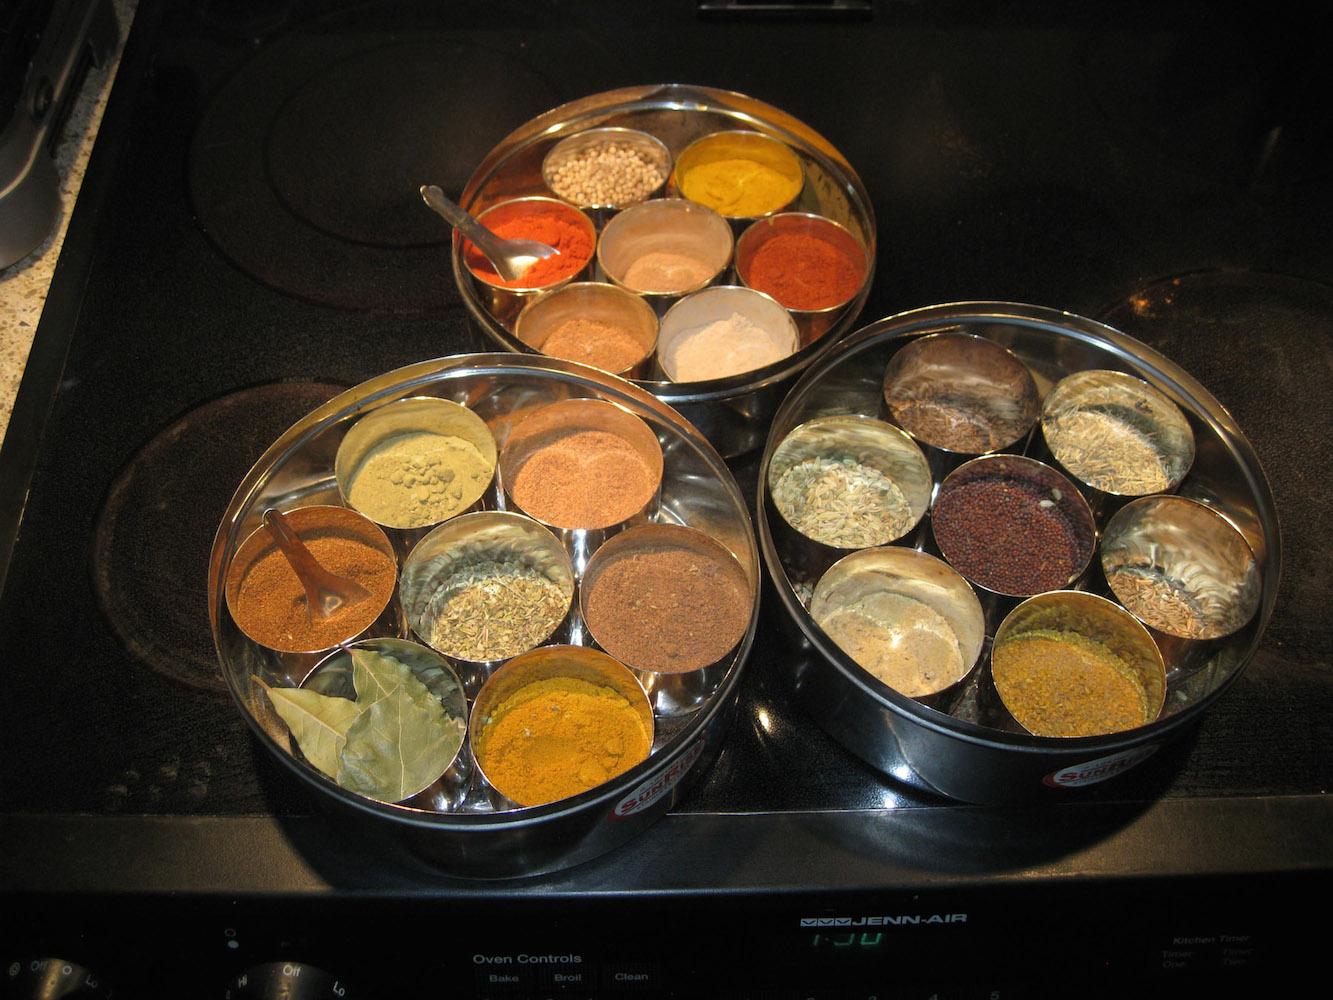 A picture of three round containers, each of which contains seven round containers filled with spices.